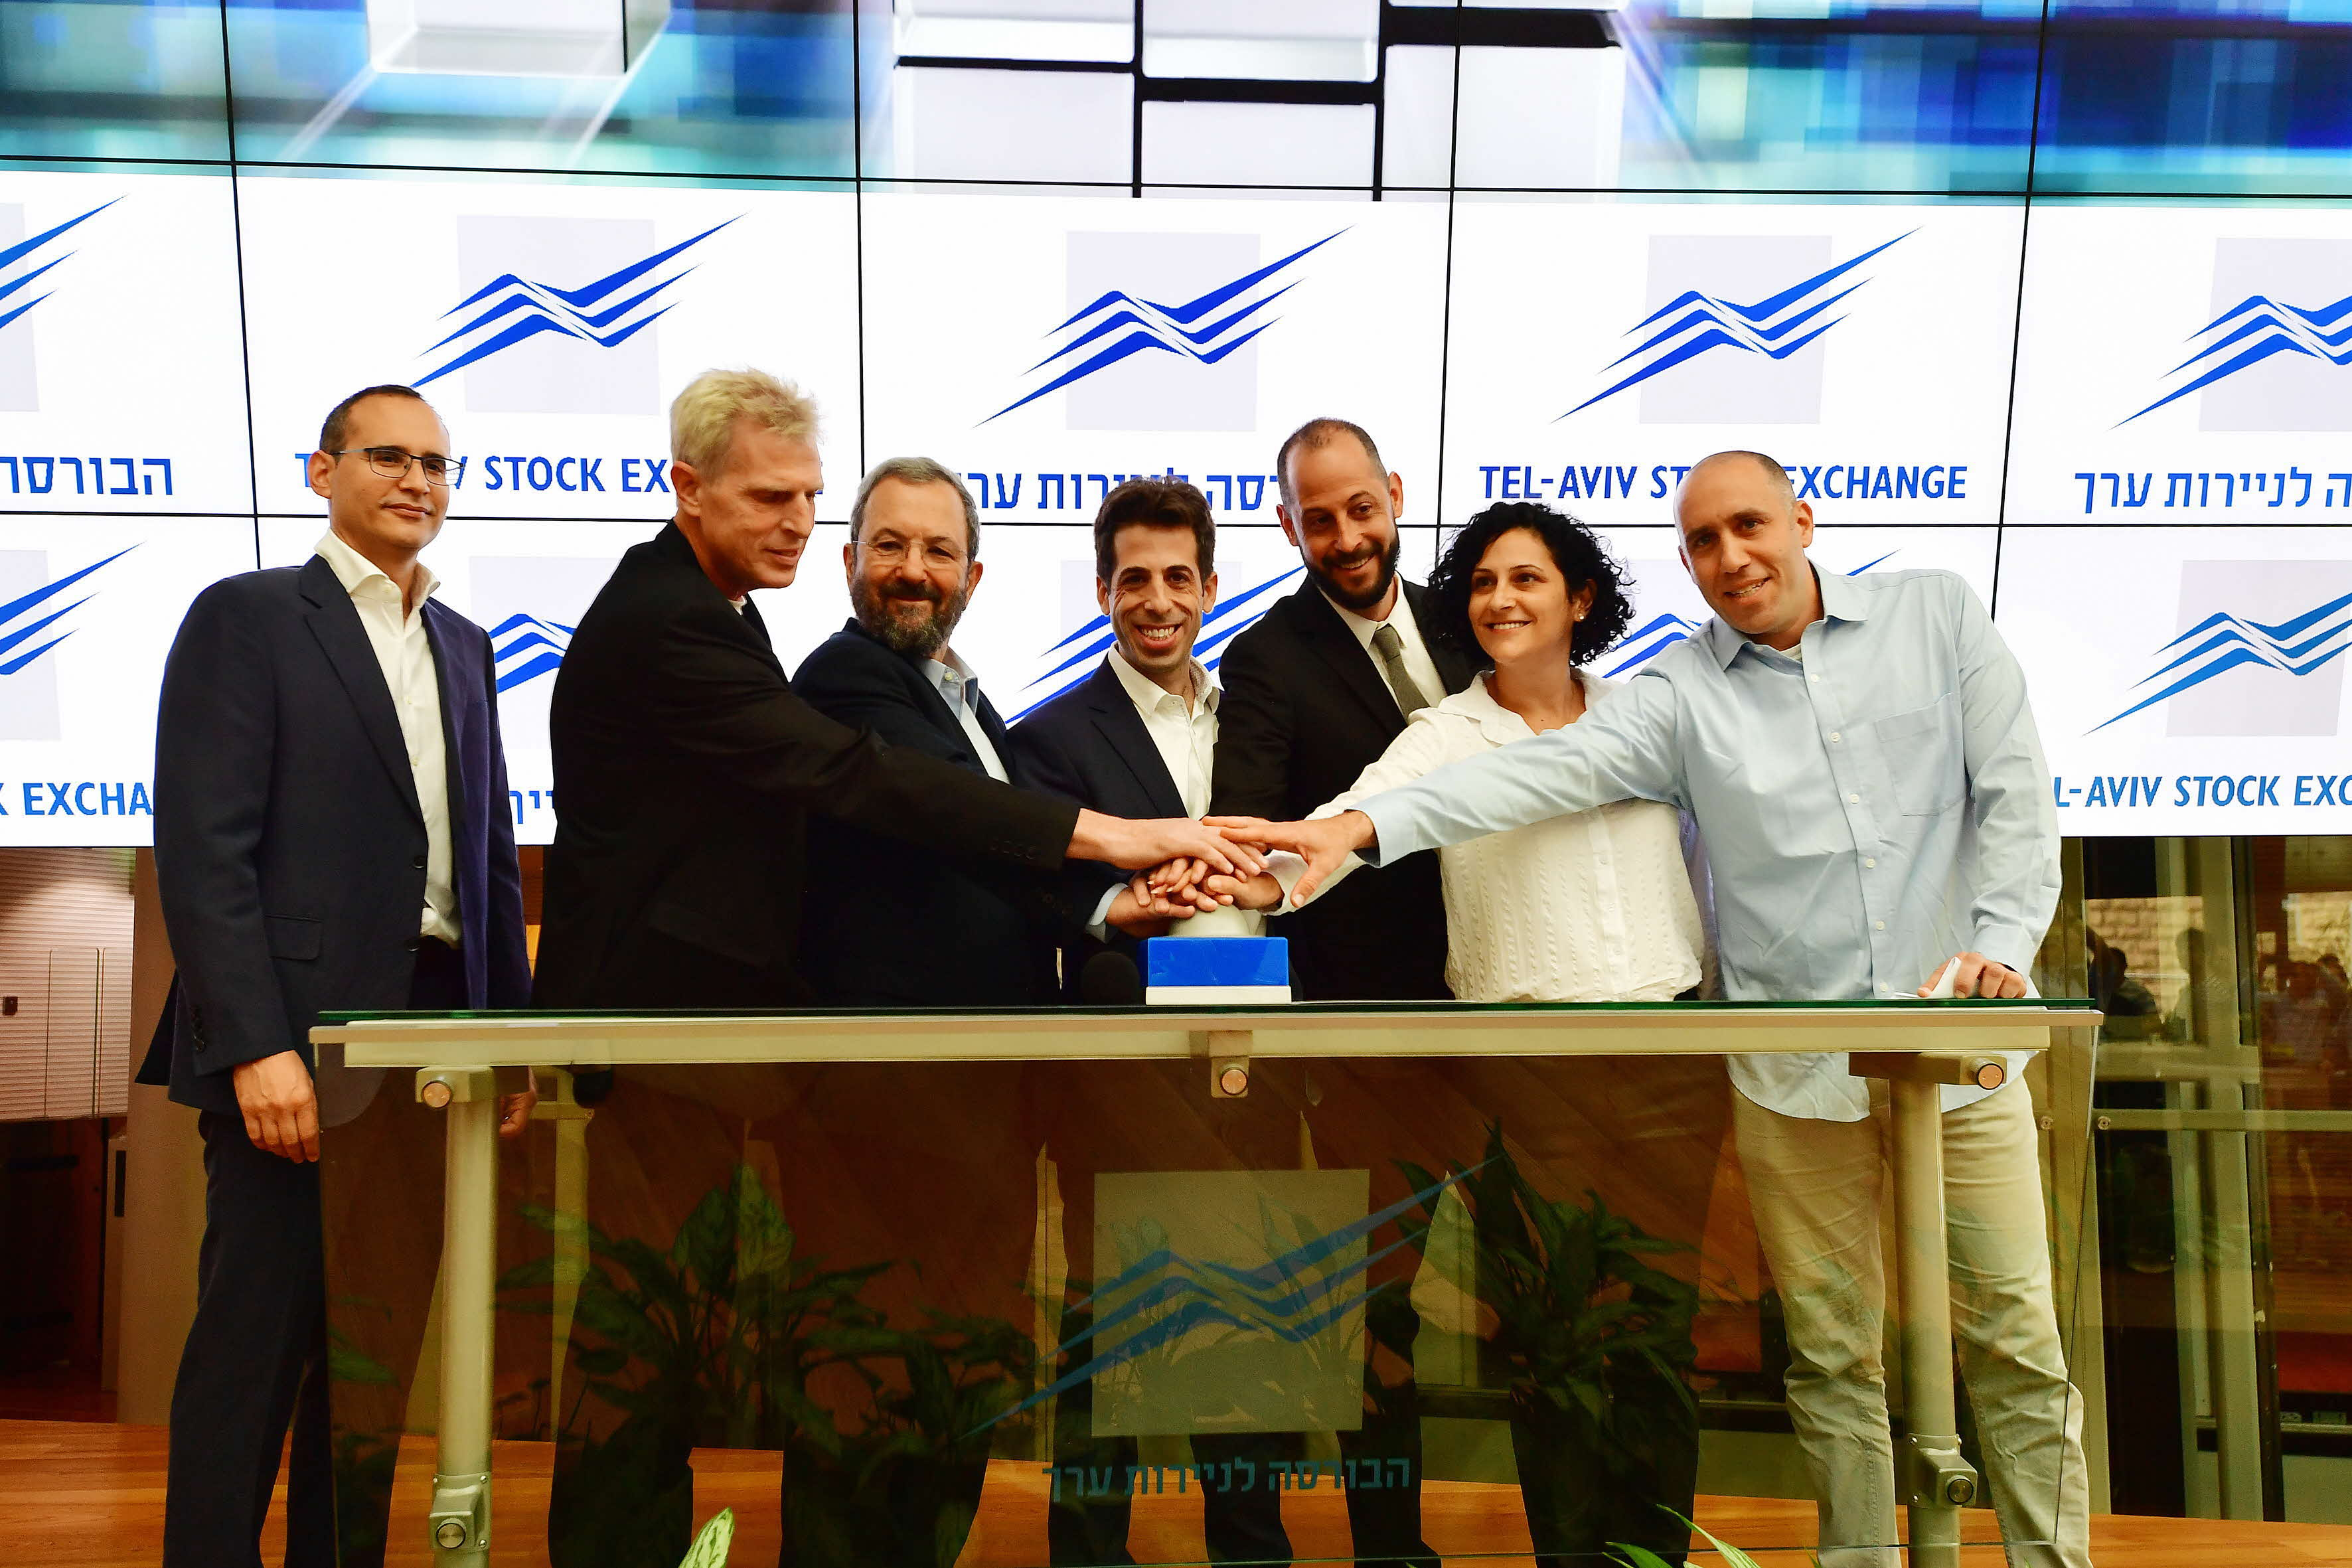 InterCure's Management Opened the Trading session This Morning celebrating the addition to TASE Indices